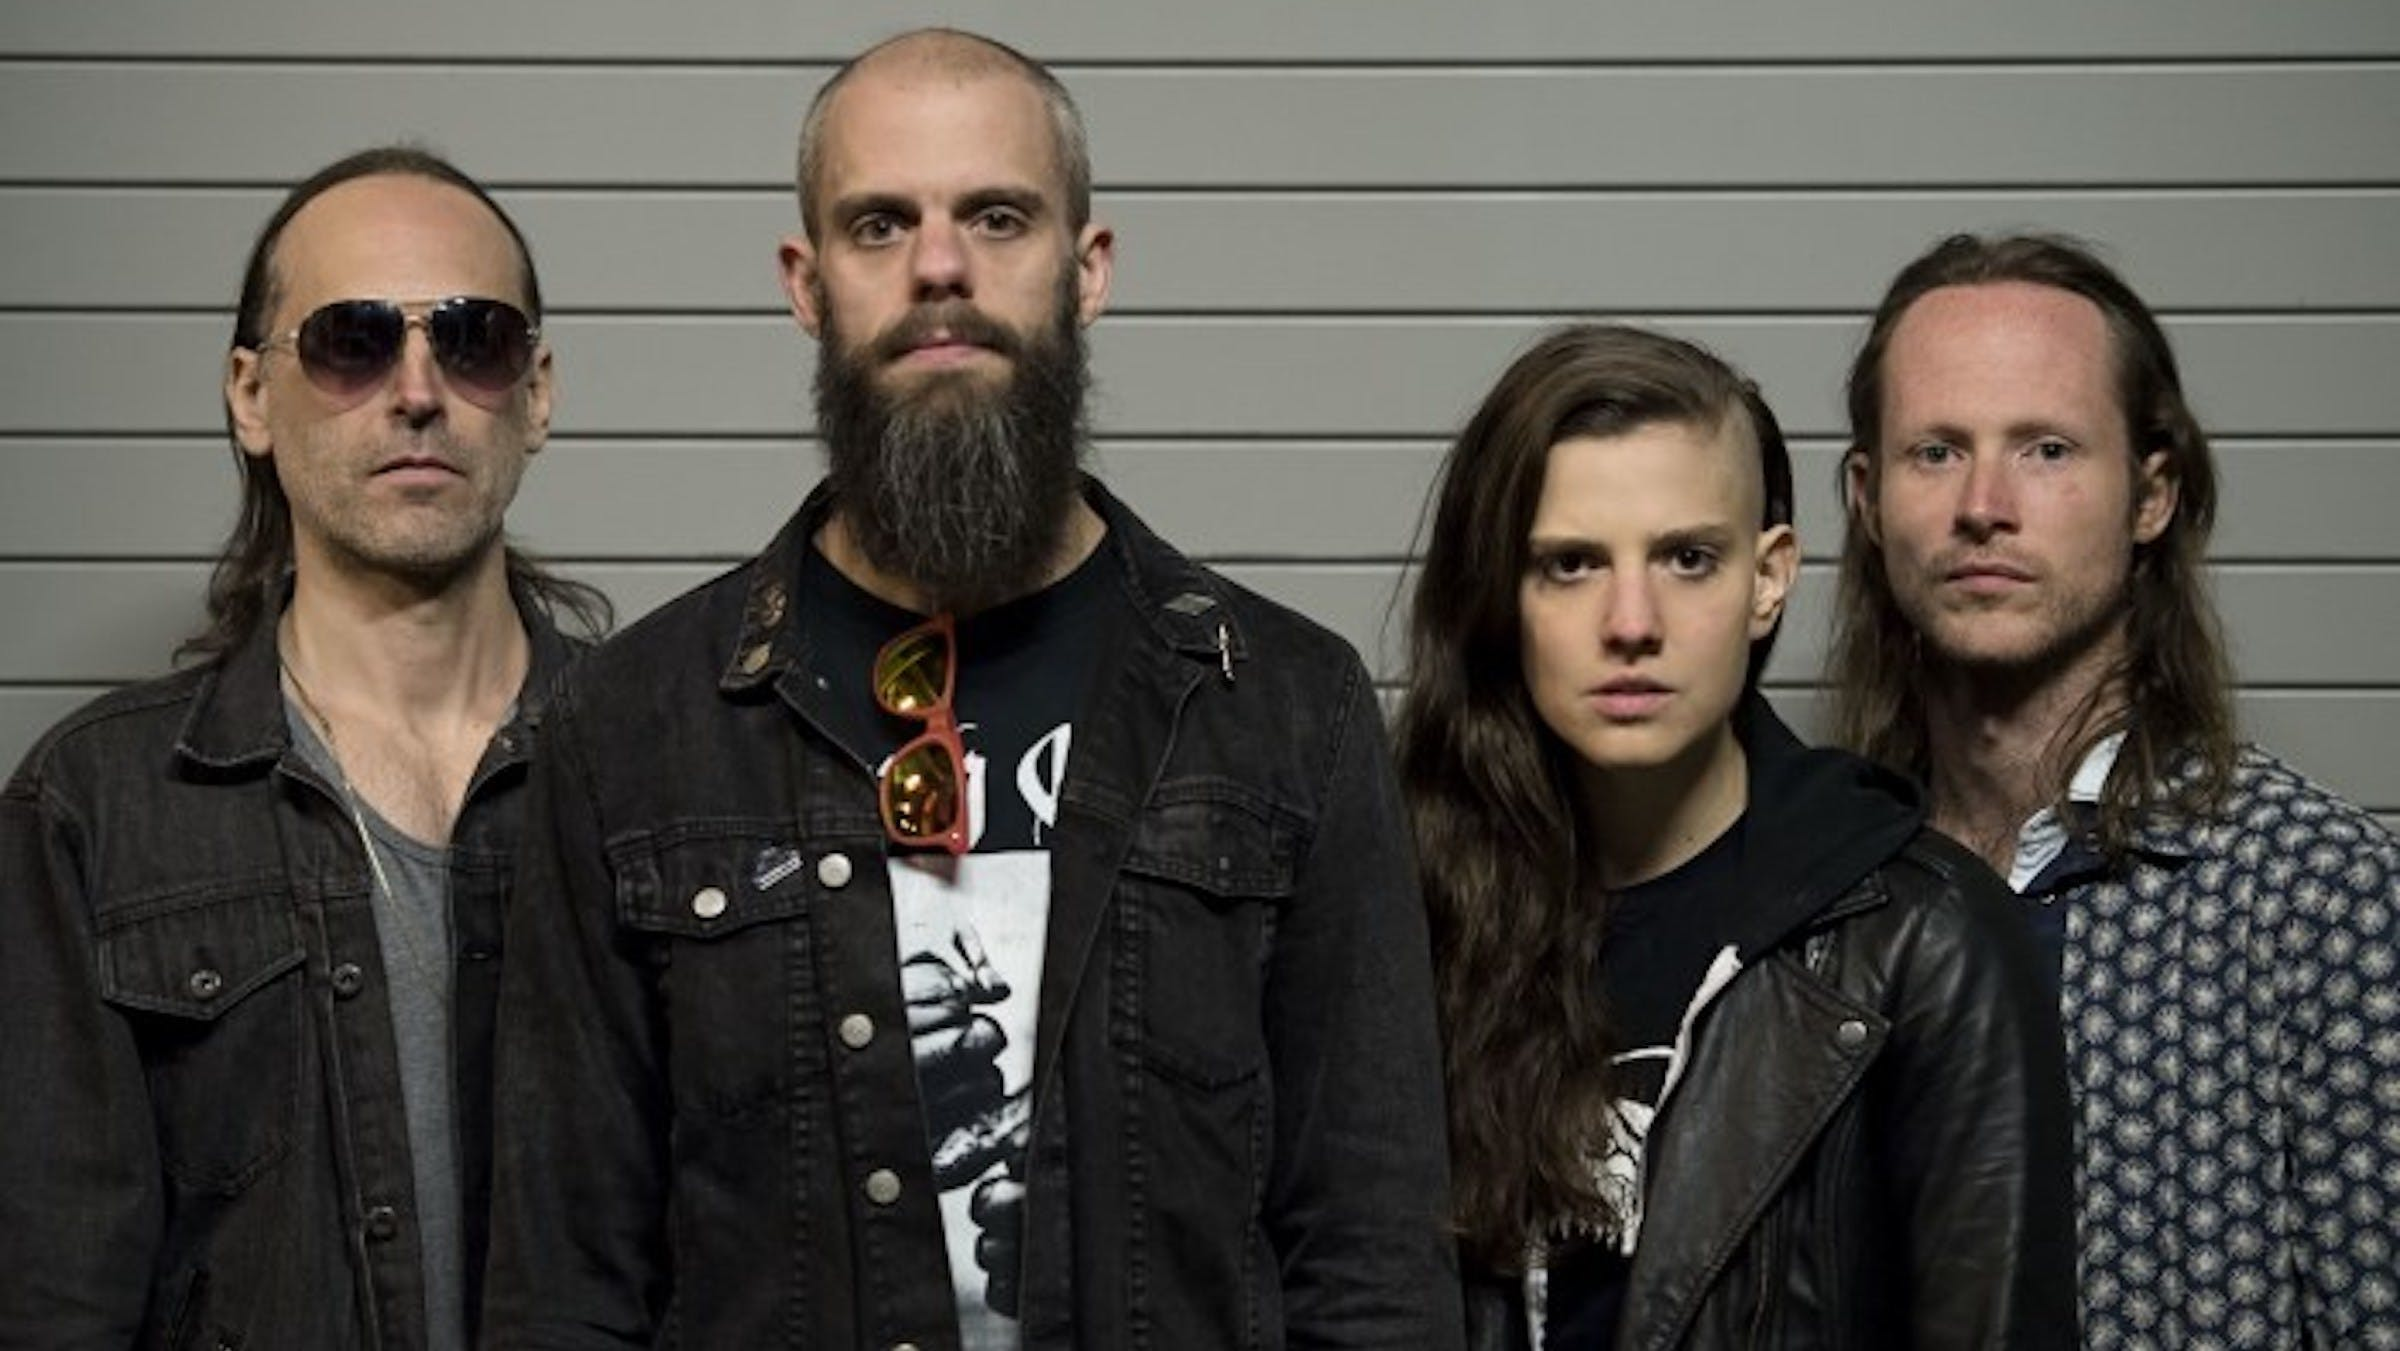 Baroness Announce U.S. Acoustic In-Store Dates